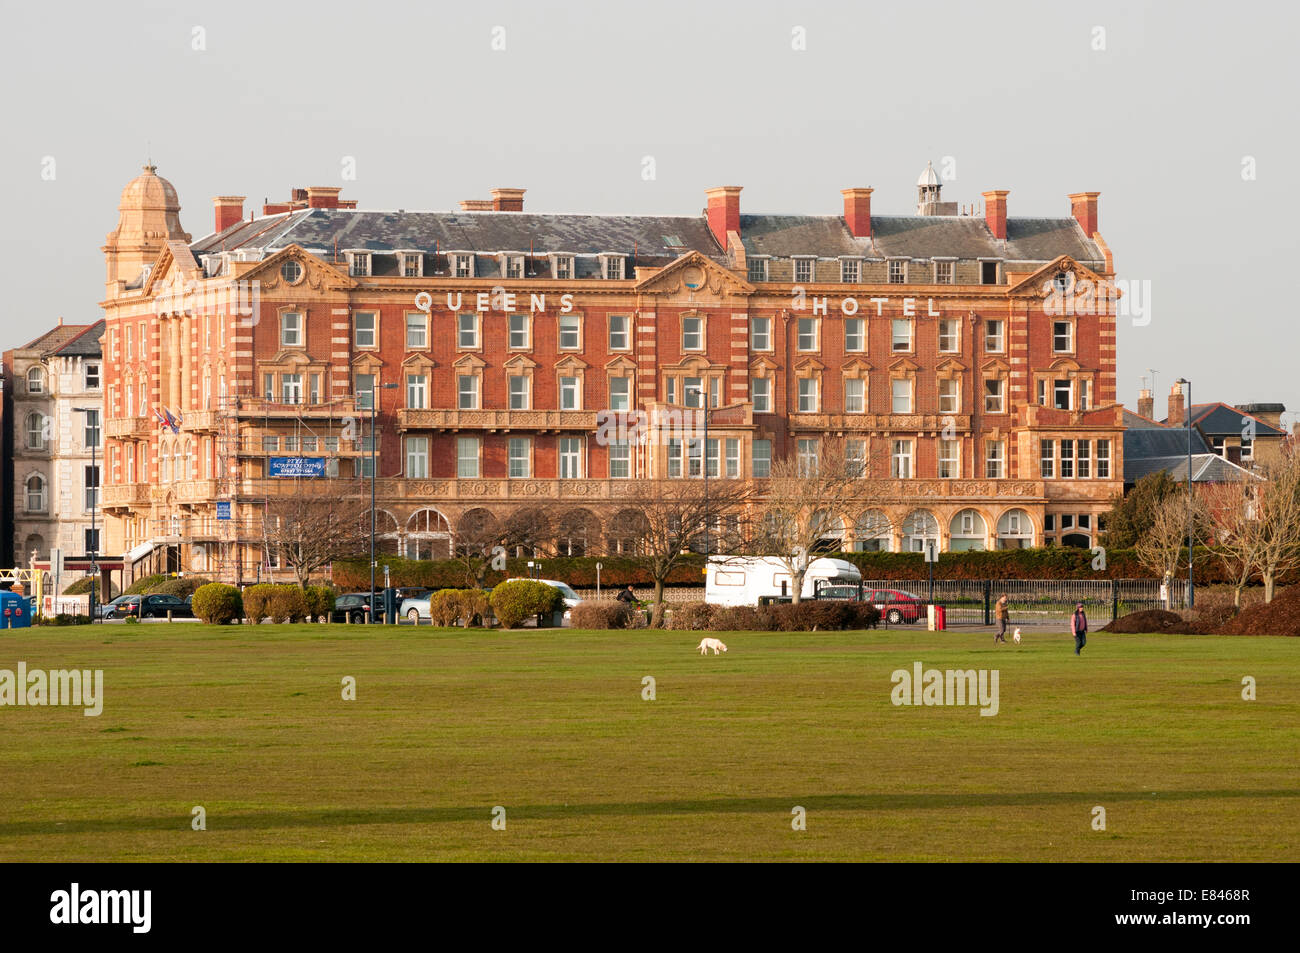 The Queens Hotel Portsmouth And Southsea Hampshire England Stock Photo 73851479 Alamy